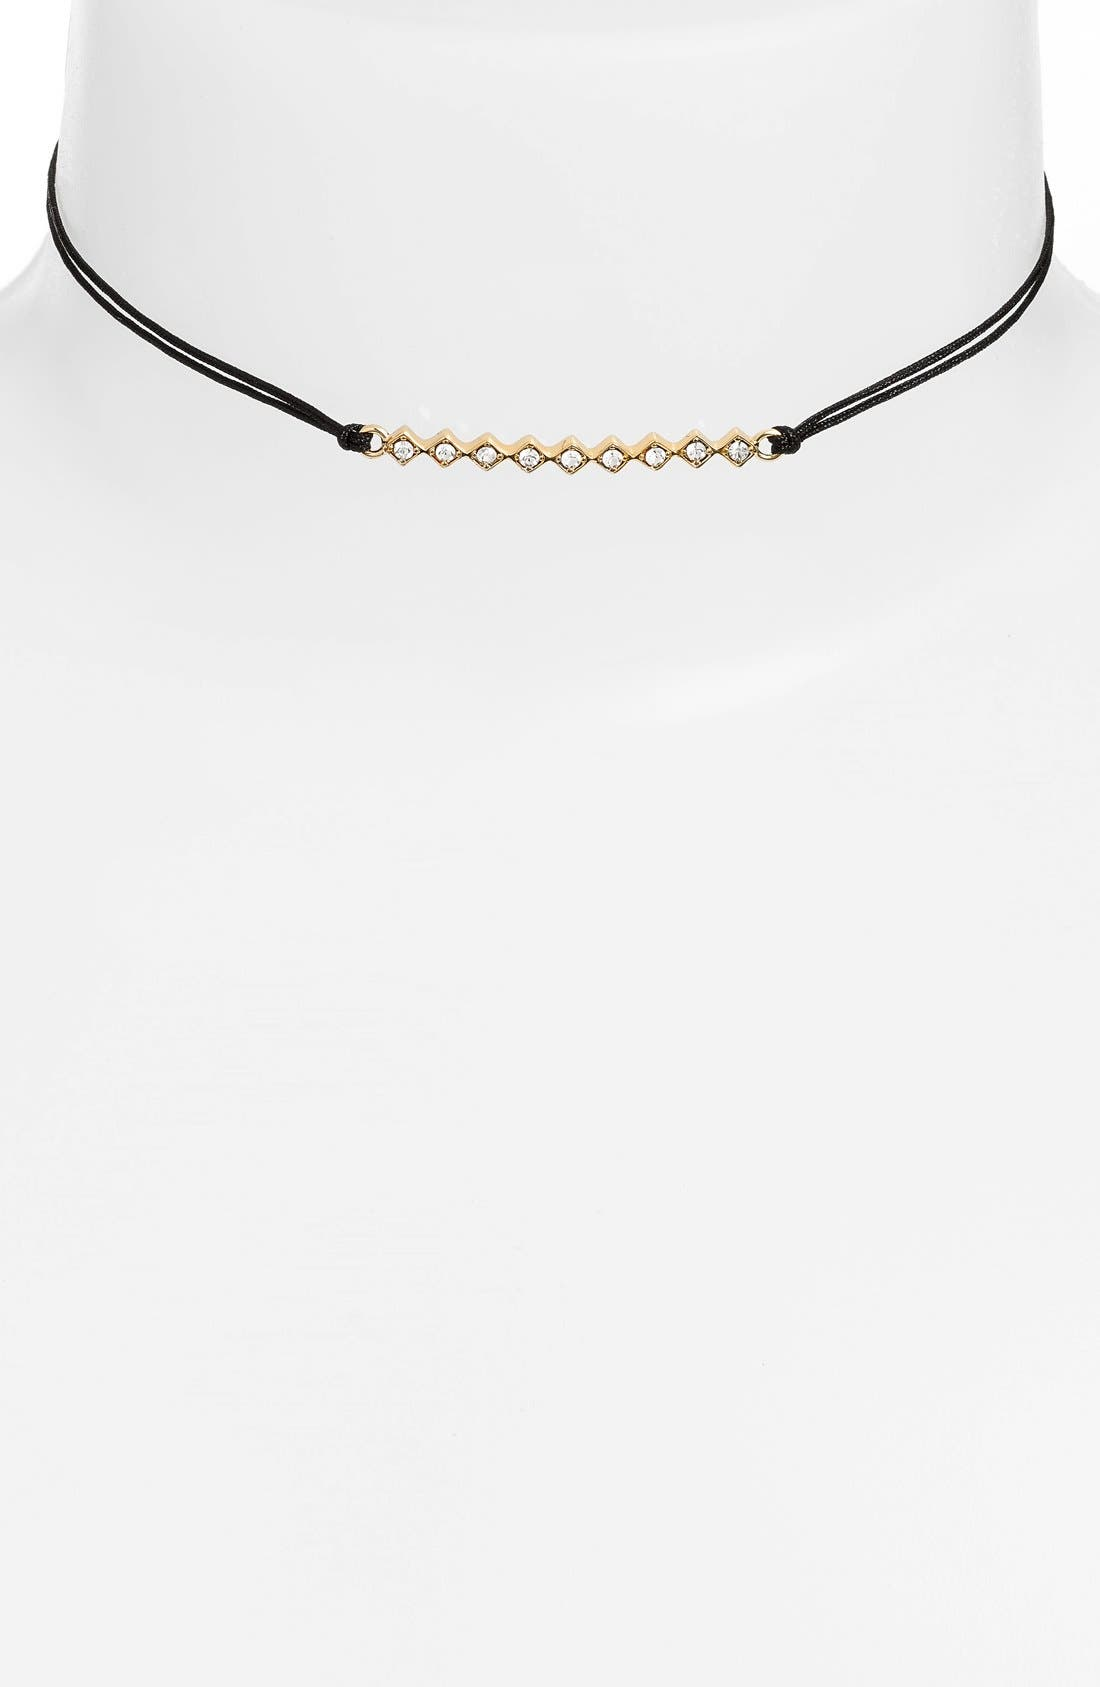 JULES SMITH 'Tulum' Crystal Bar Pendant Choker